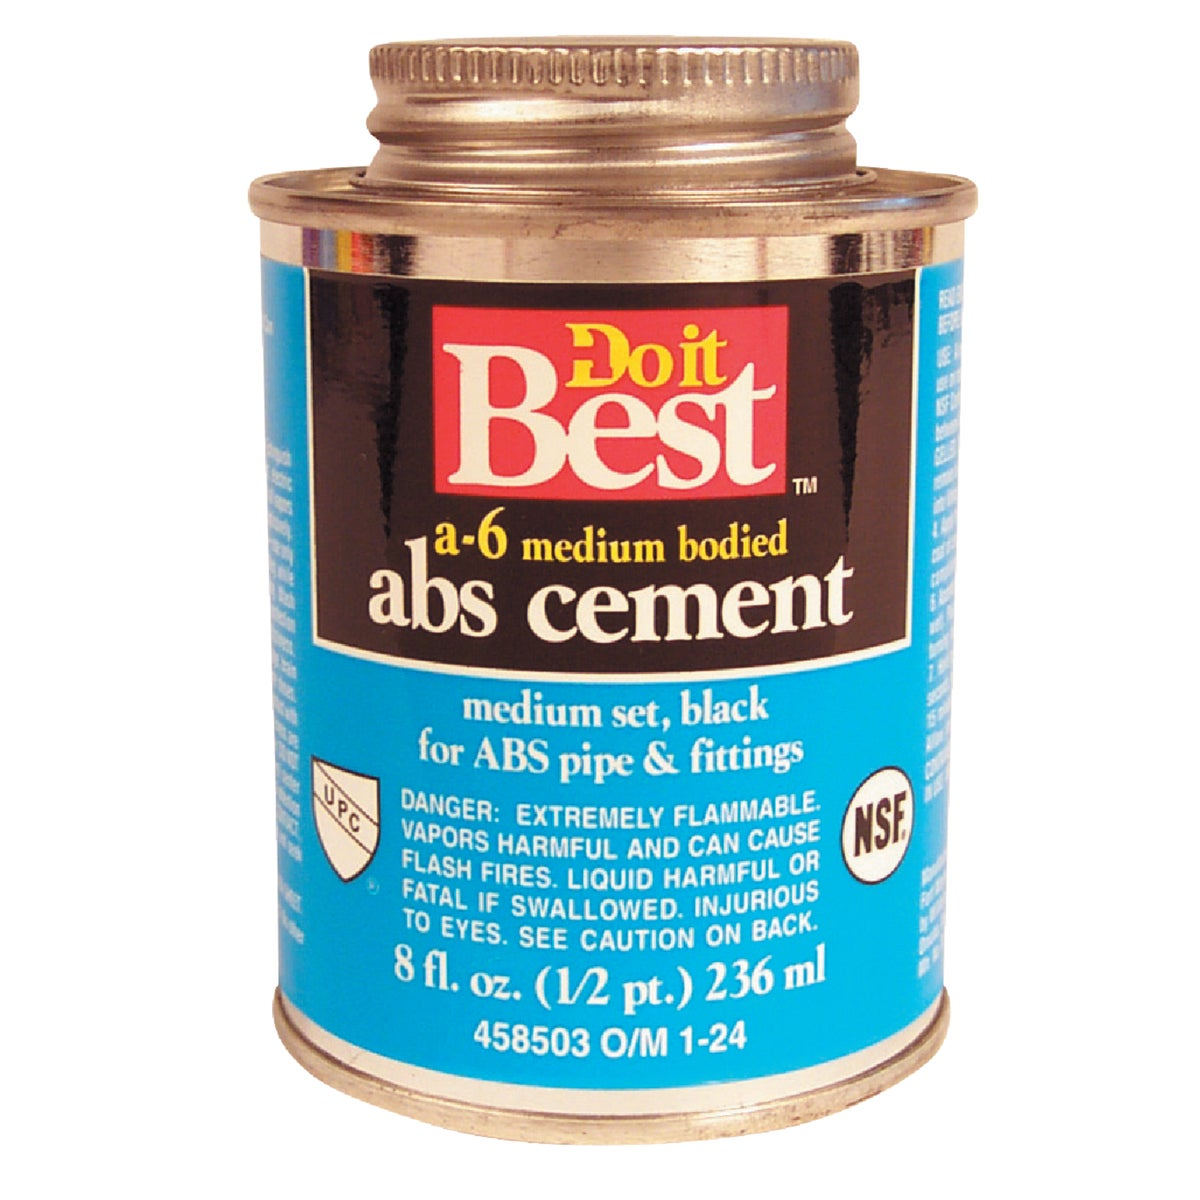 1/2PINT ABS CEMENT